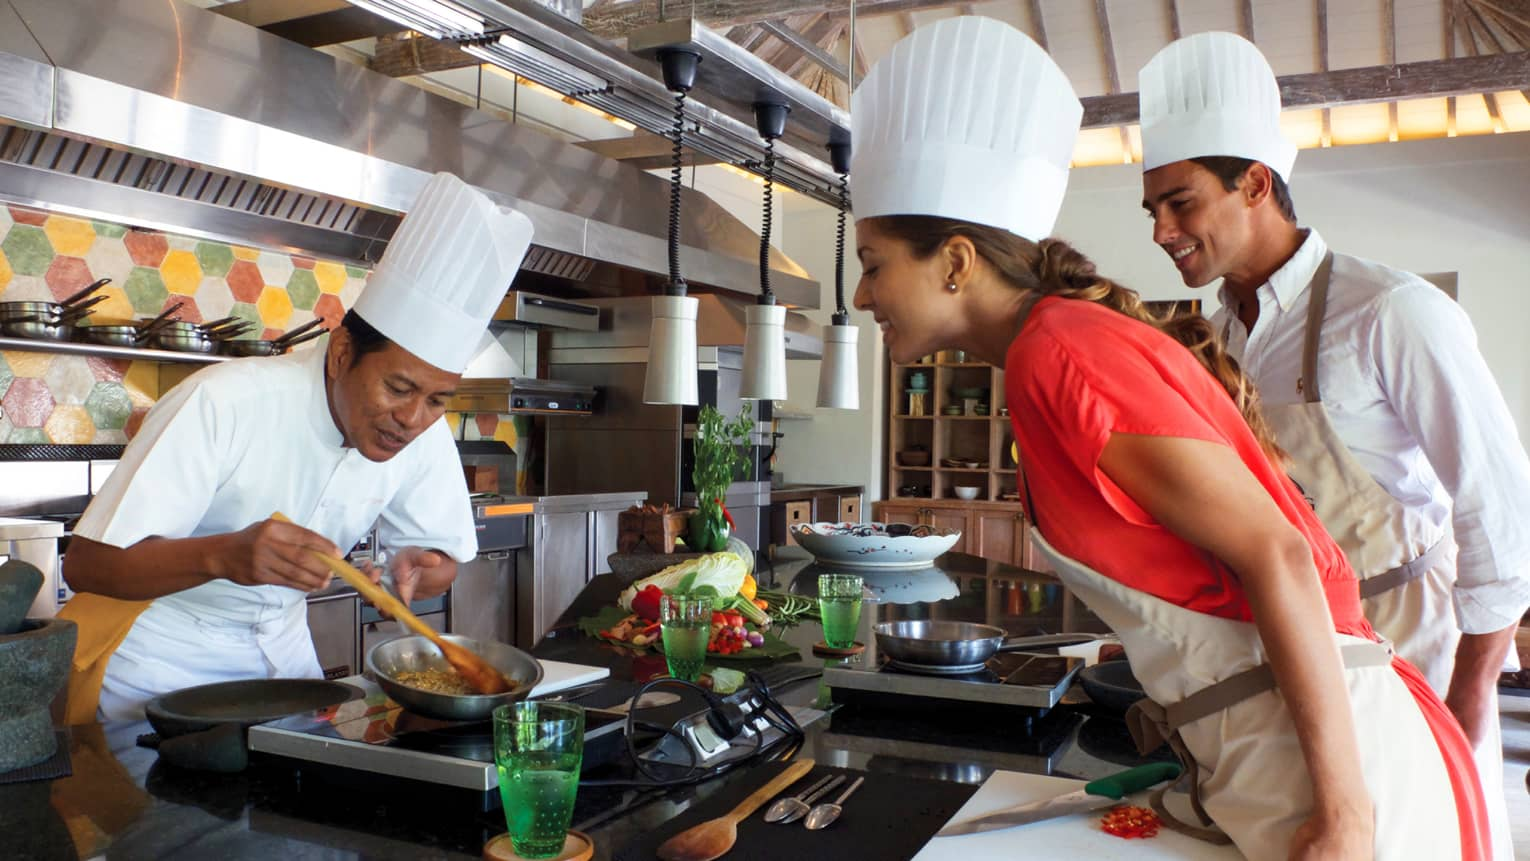 Chef in white hat, uniform stirs food in pan as woman and man in chef's hat, apron watch, smile